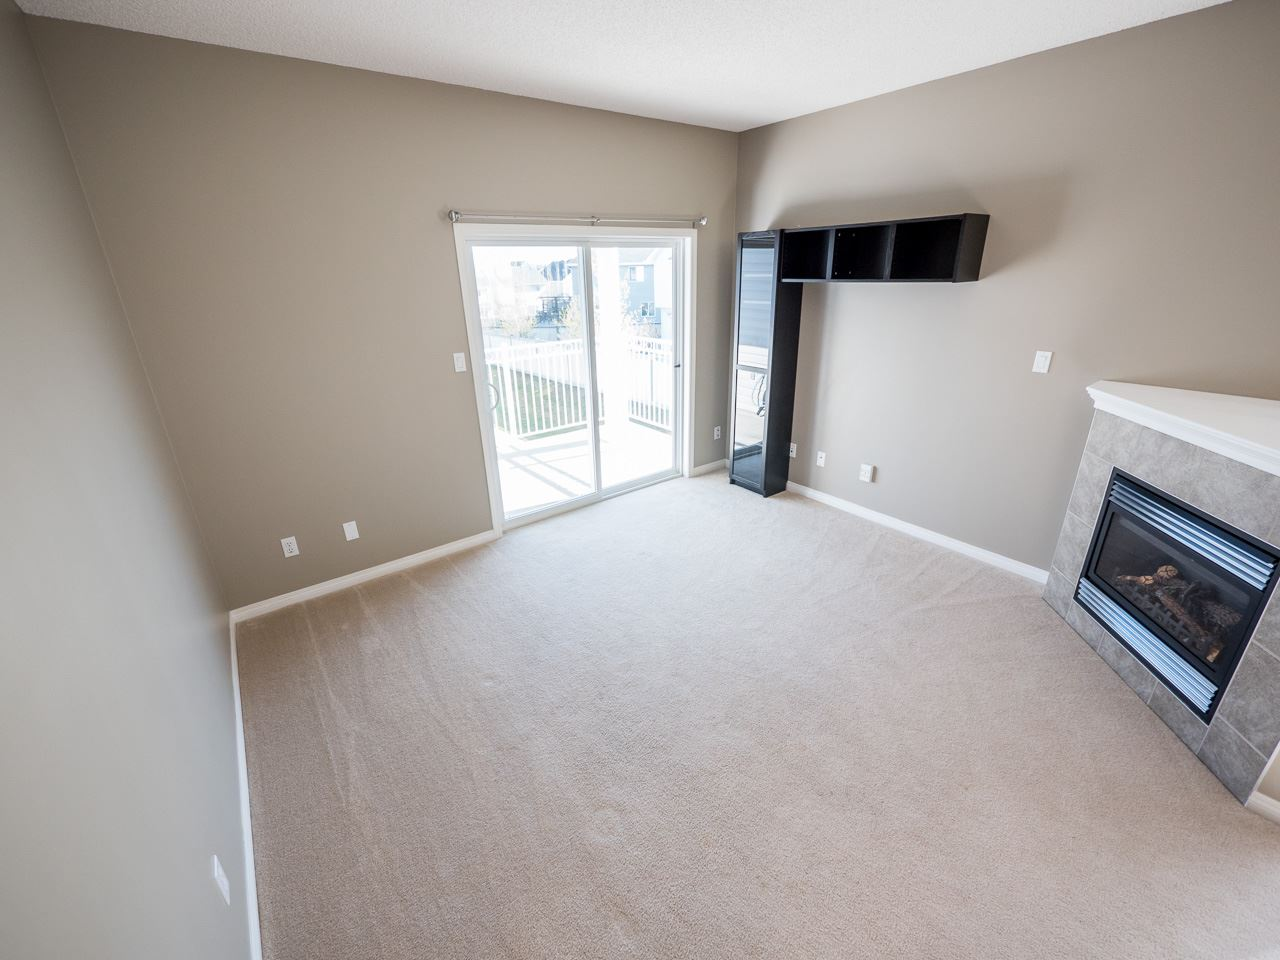 Photo 11: 71 3040 SPENCE Way in Edmonton: Zone 53 Townhouse for sale : MLS(r) # E4063695